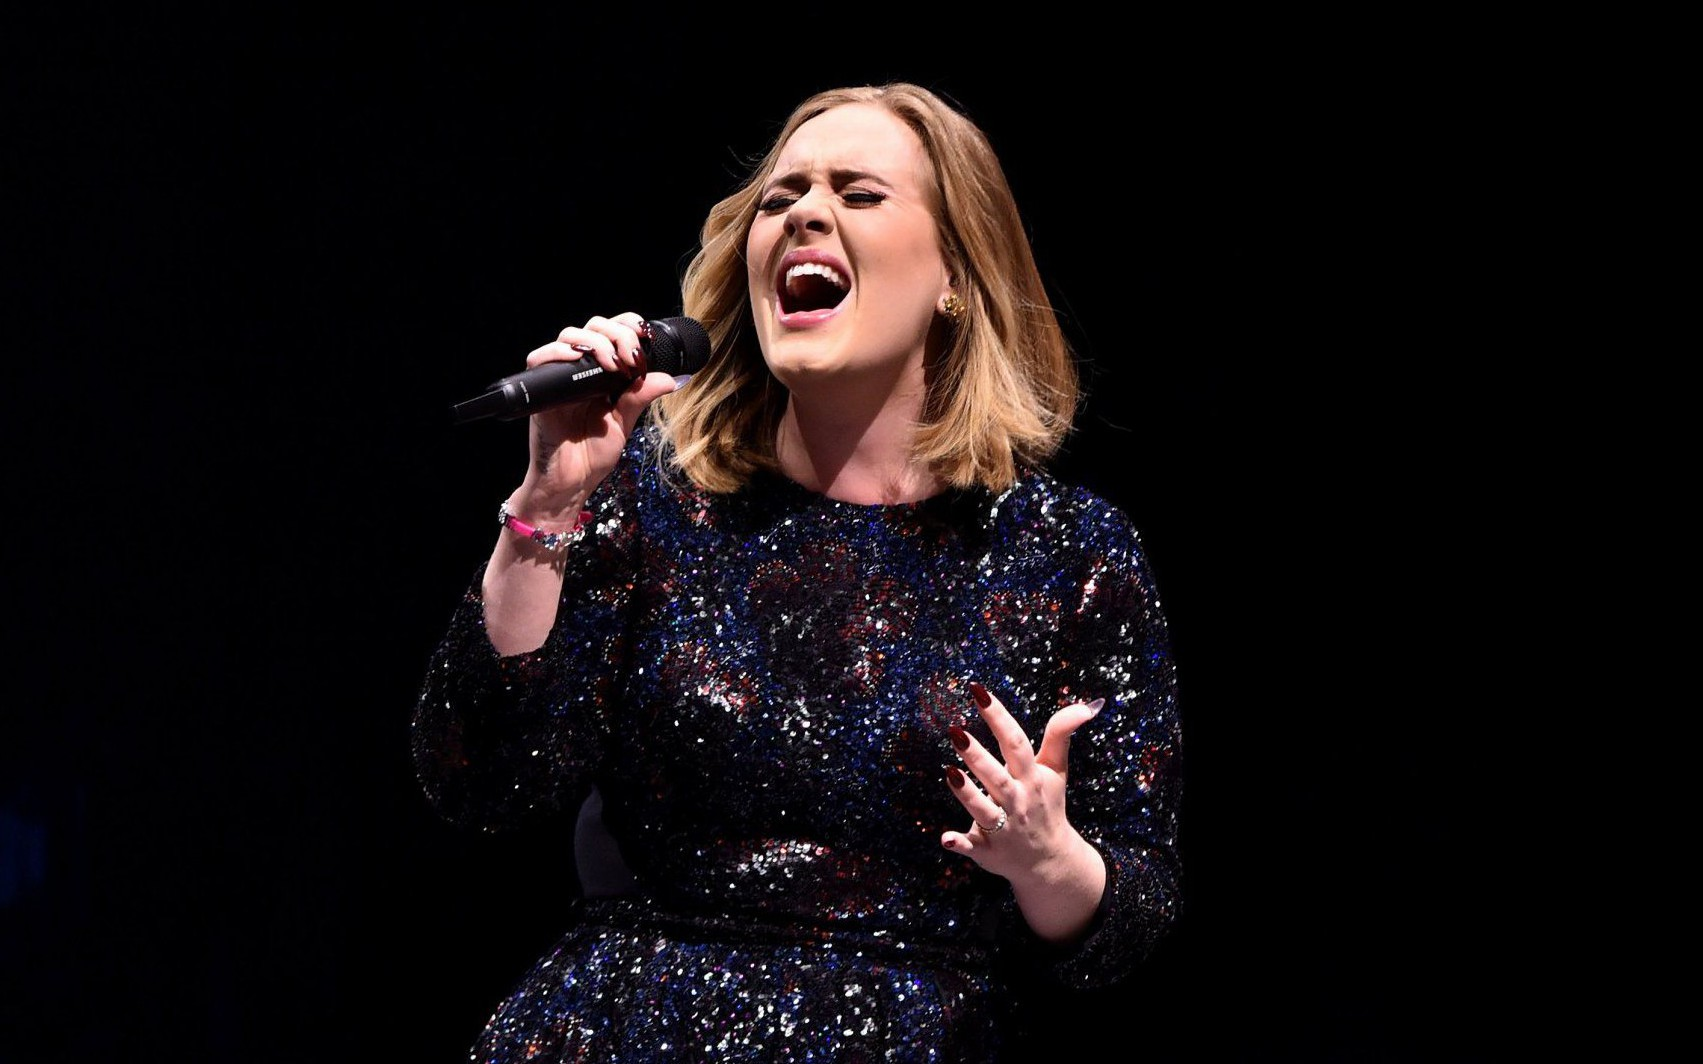 GLASGOW, SCOTLAND - MARCH 25: Adele performs at The SSE Hydro on March 25, 2016 in Glasgow, Scotland. (Photo by Gareth Cattermole/Getty Images)